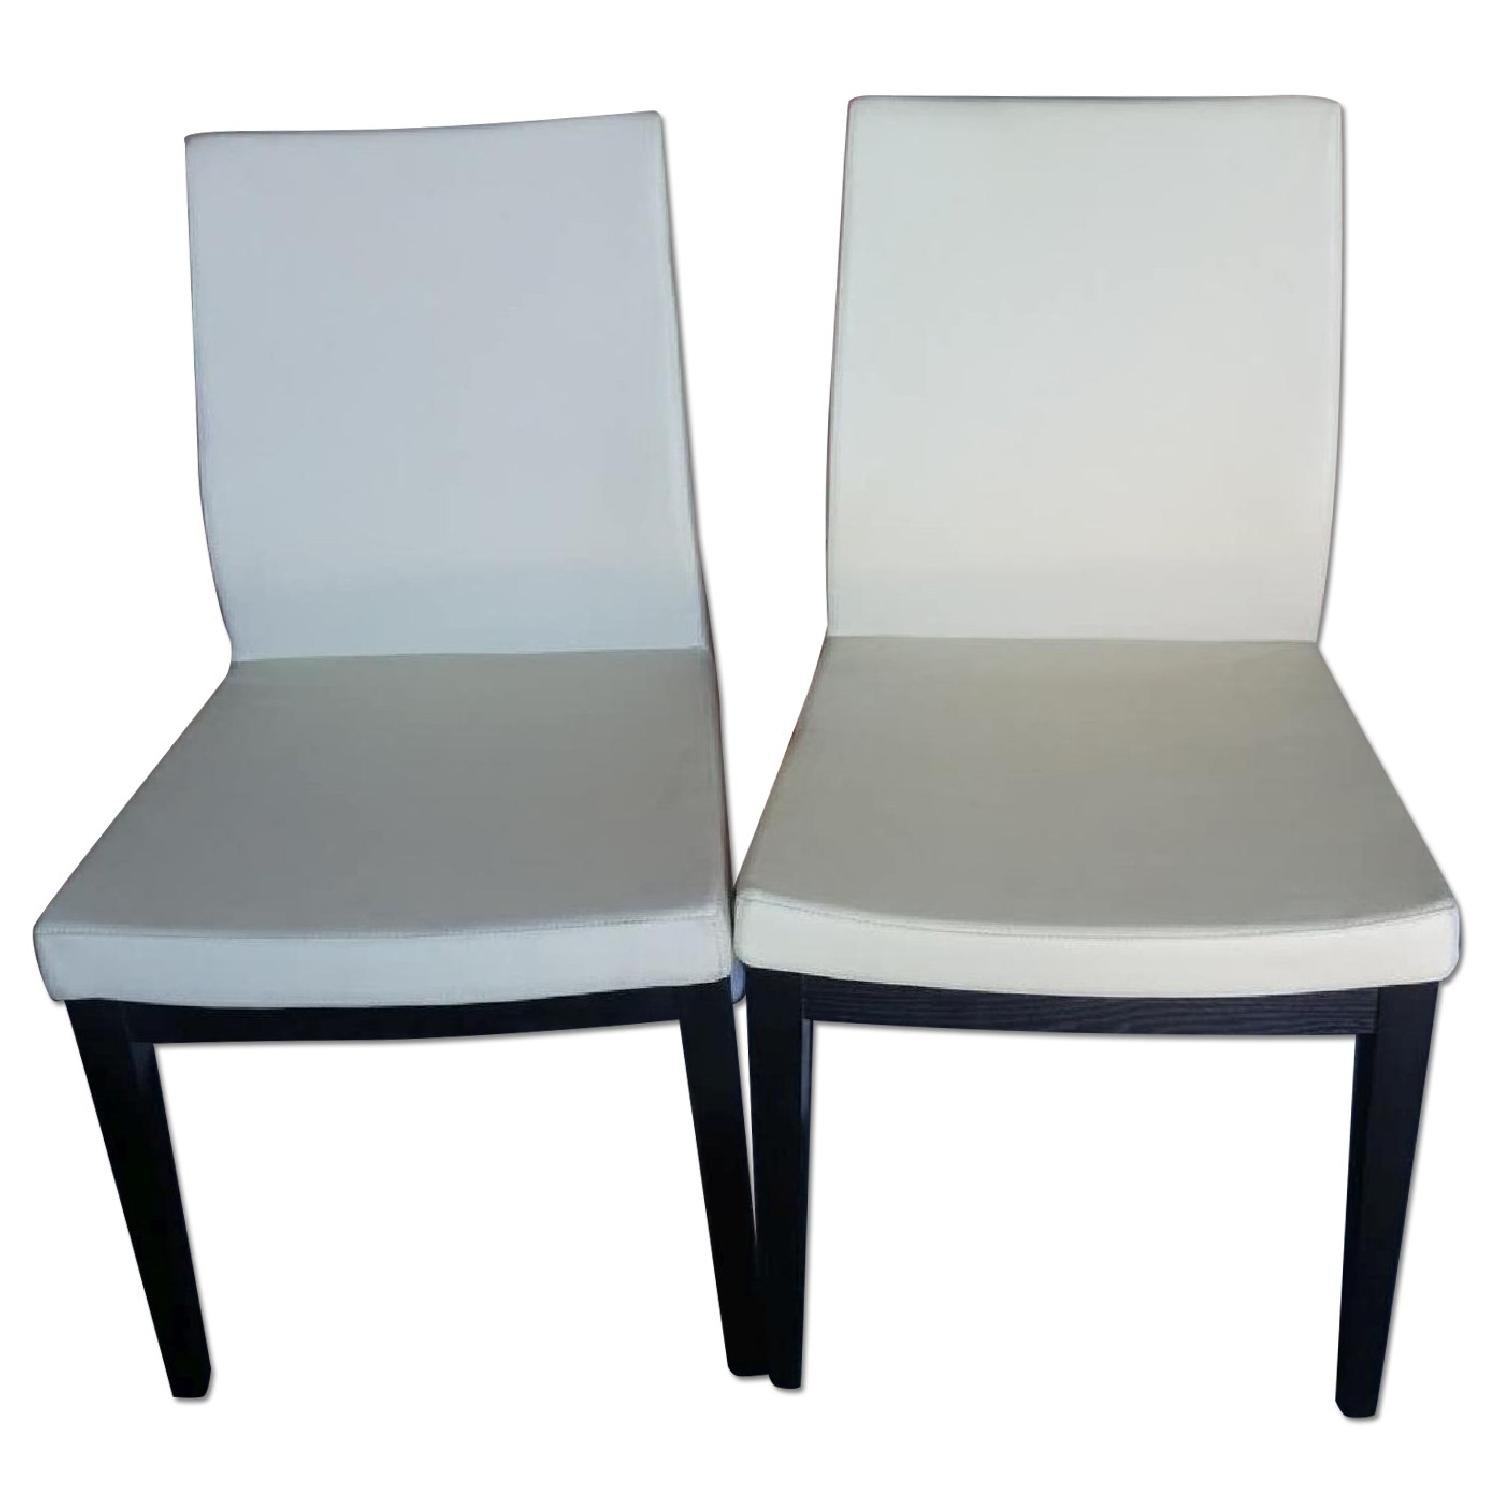 sohoConcept Aria Modern Dining Chair in Cream Leatherette